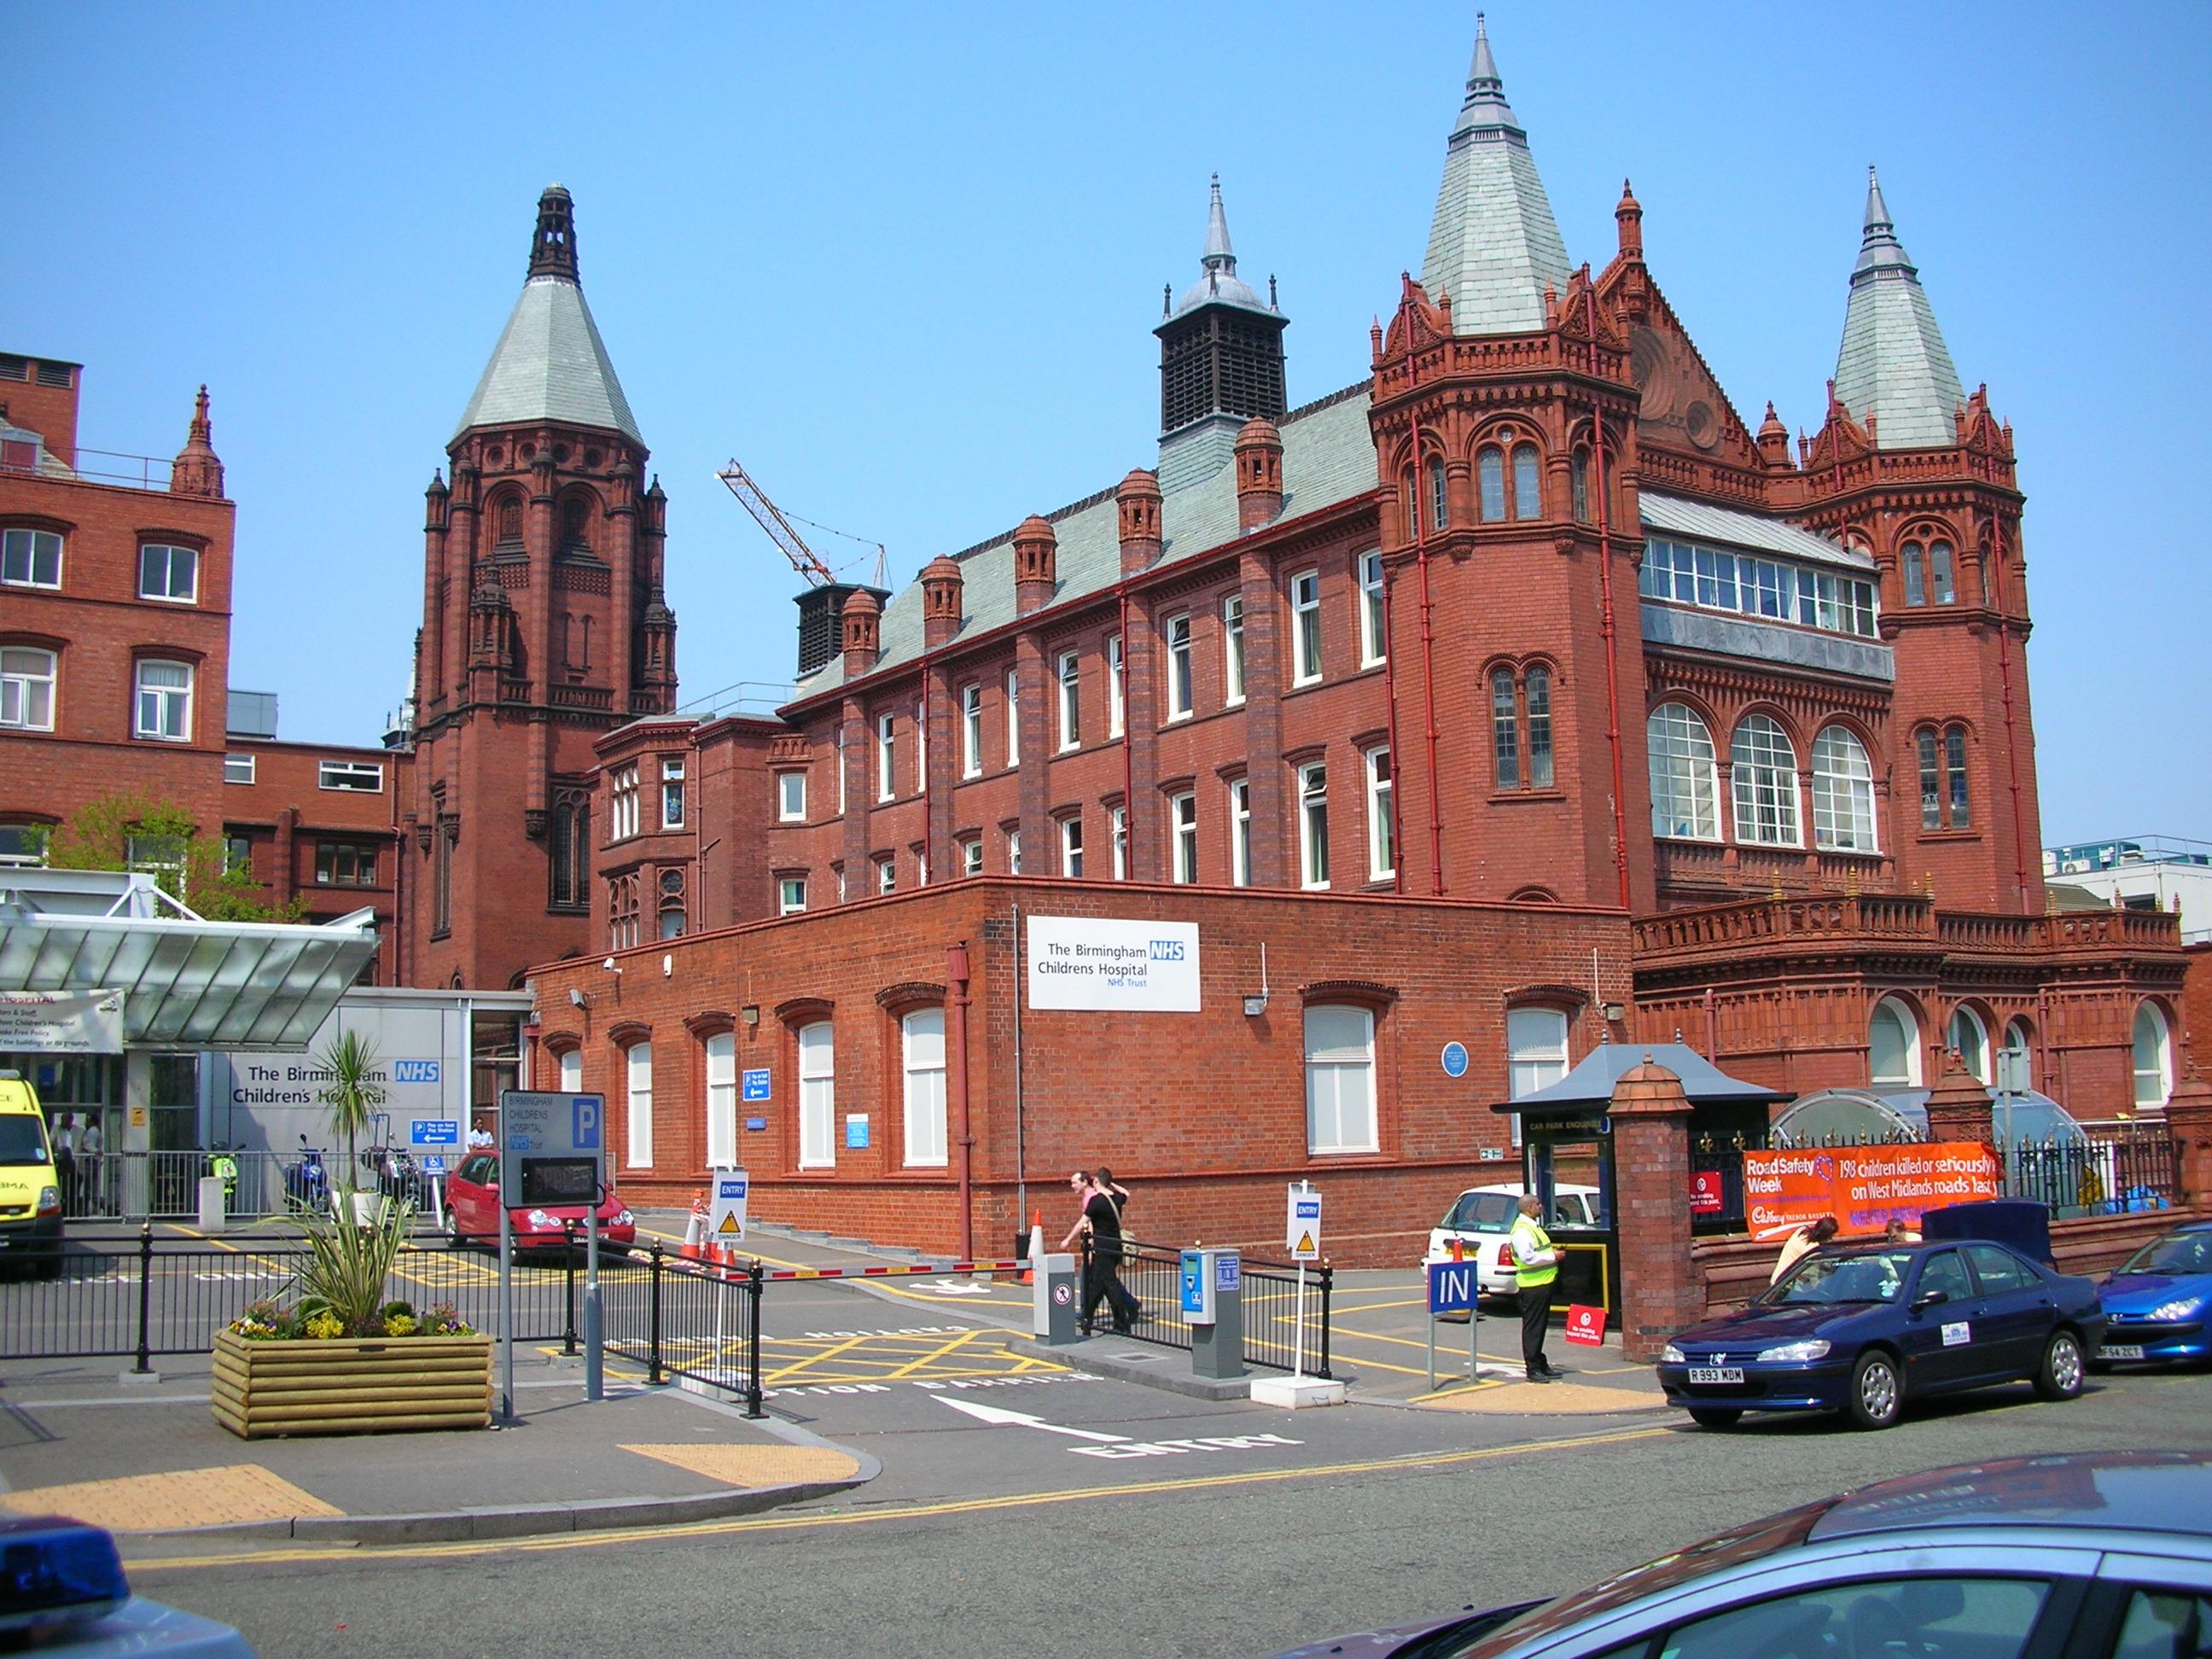 Birmingham Children's Hospital - Wikipedia